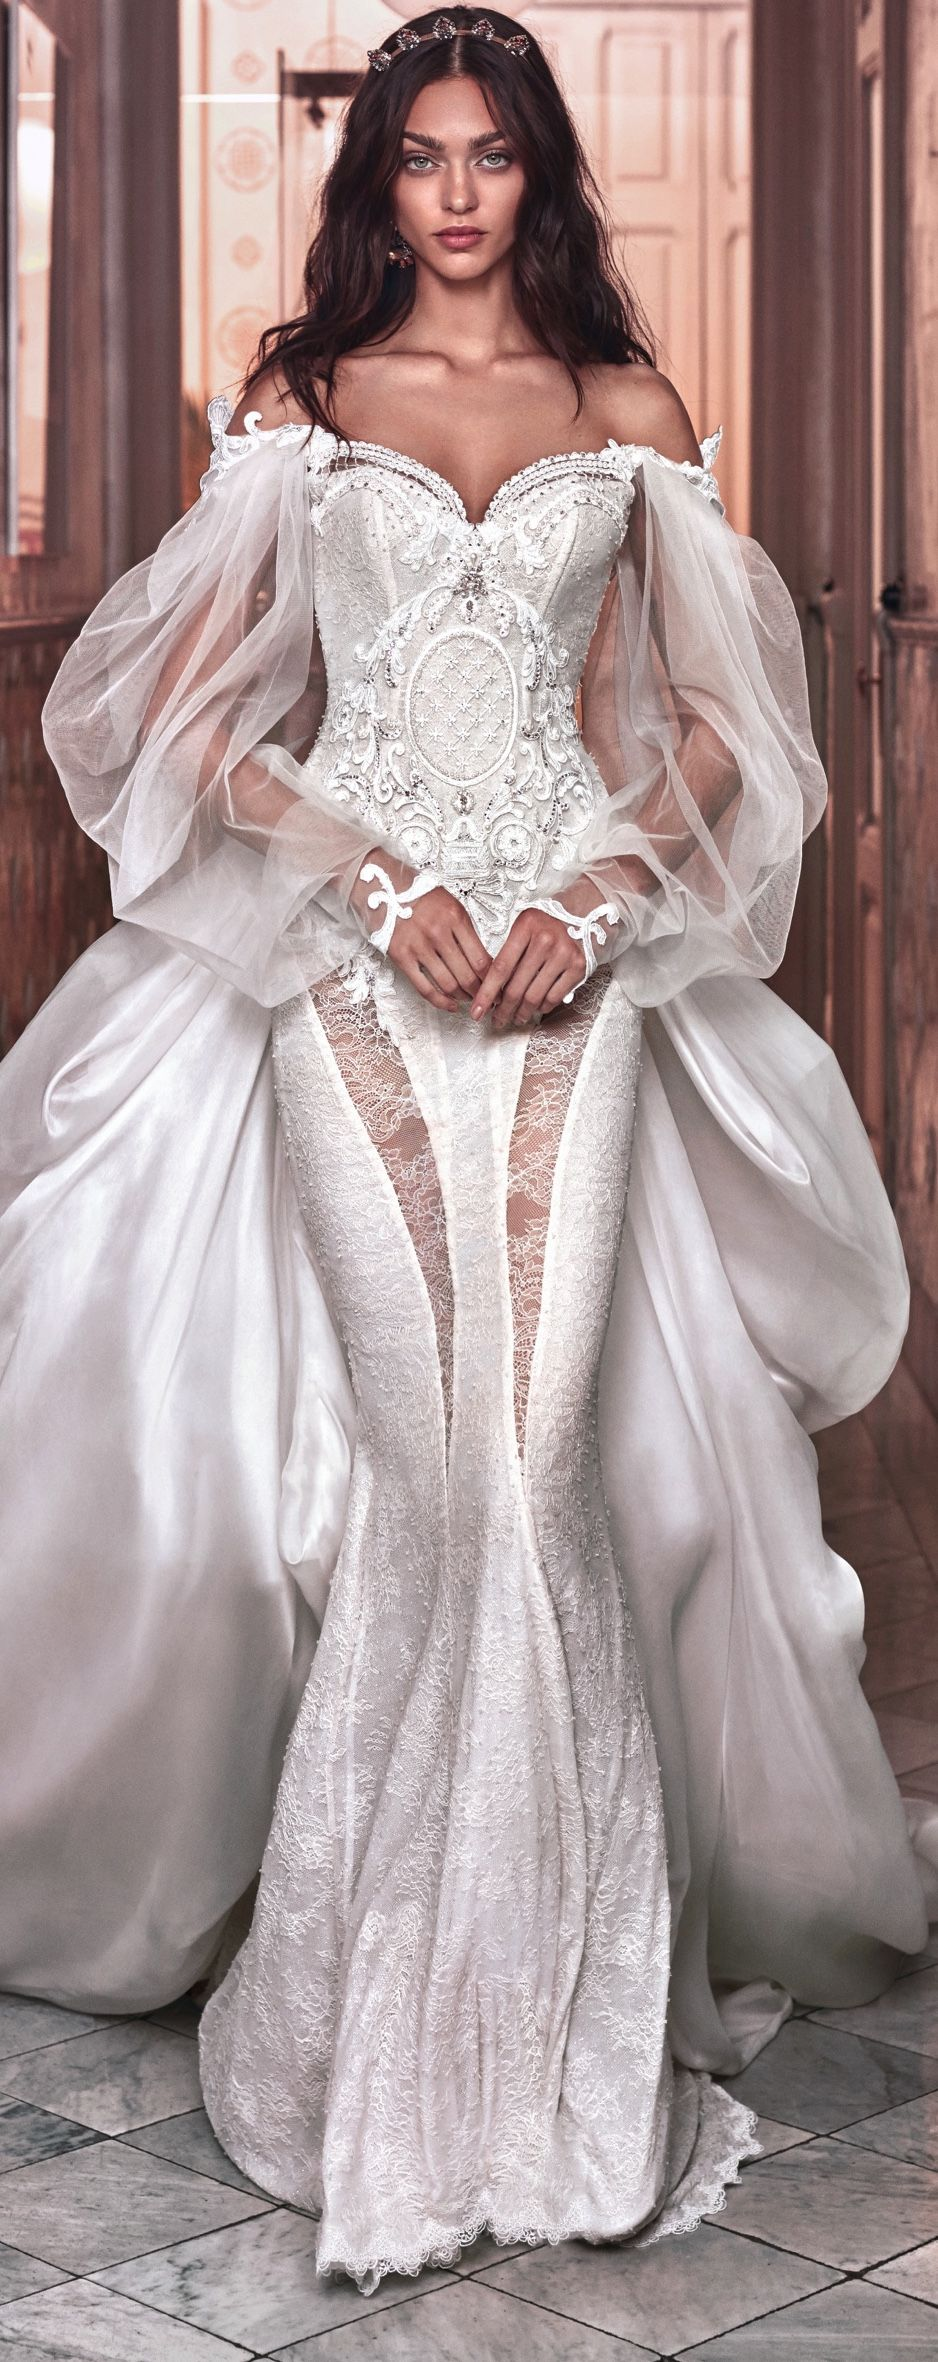 A Victorian wedding gown, homage to Queen Victoria\'s wedding gown ...